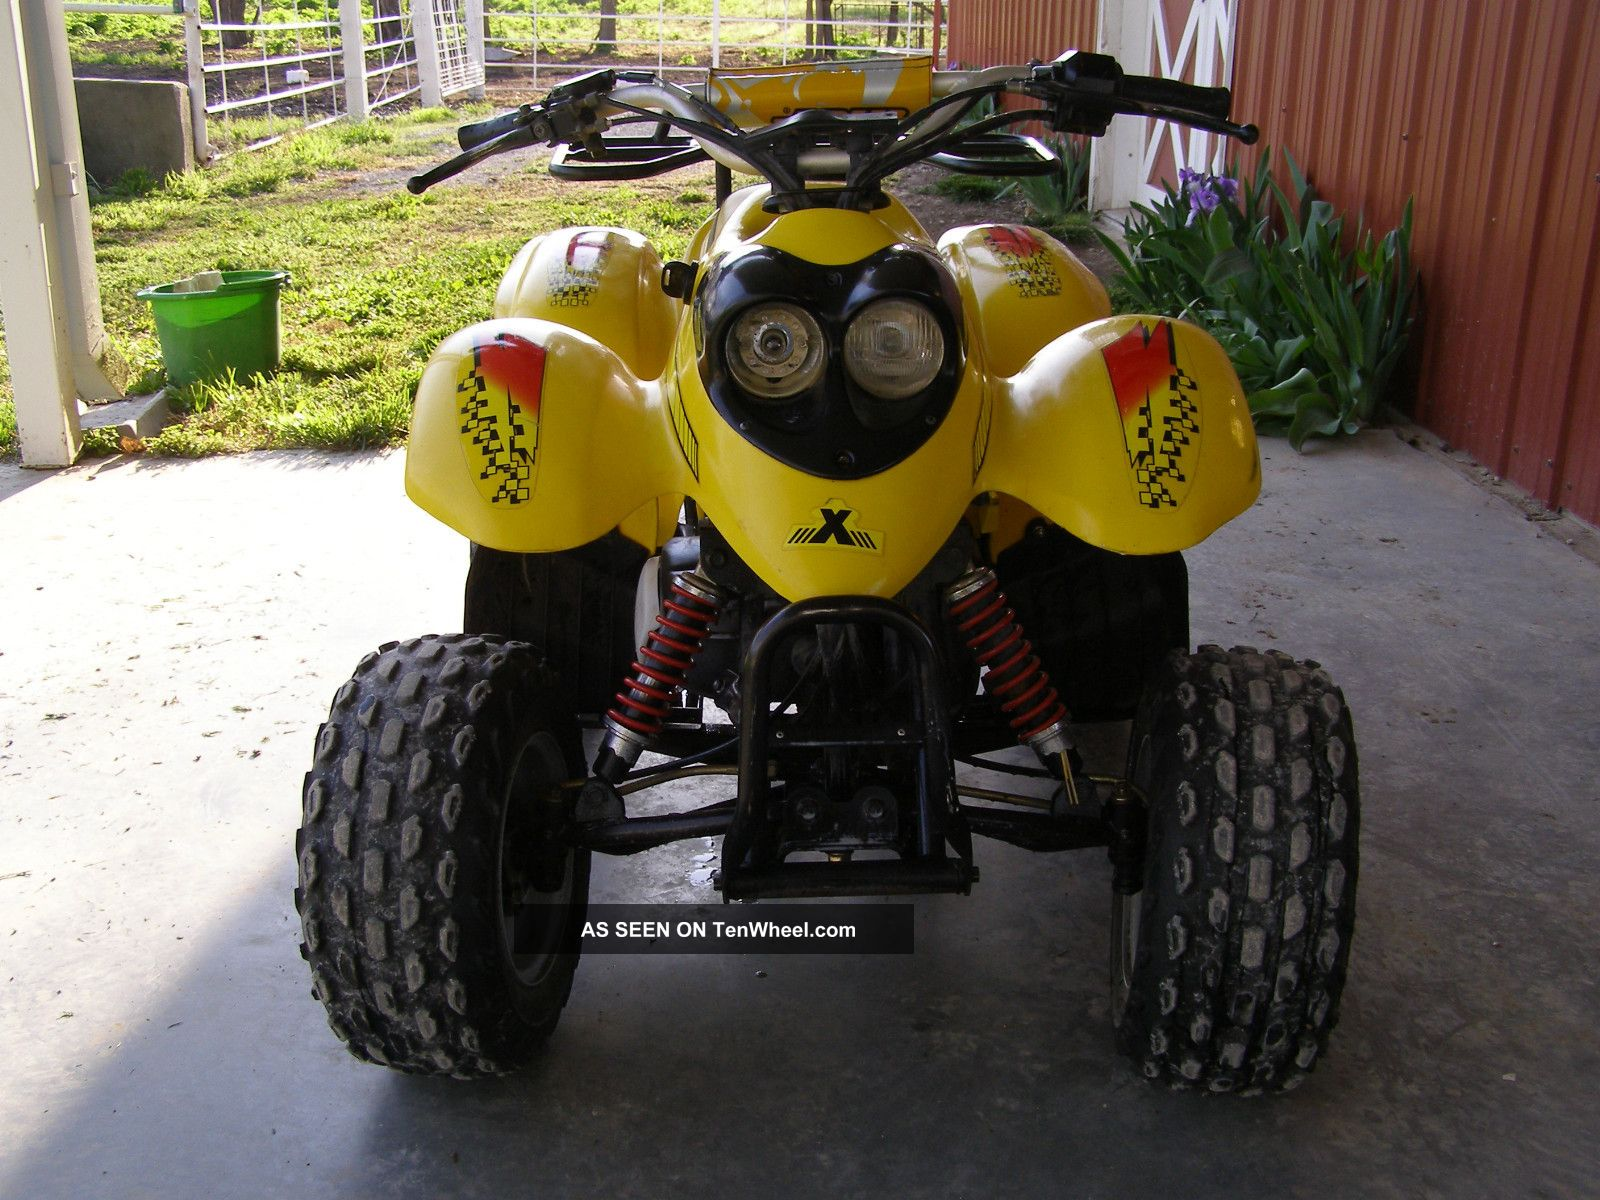 2003 Polaris Atv Polaris photo